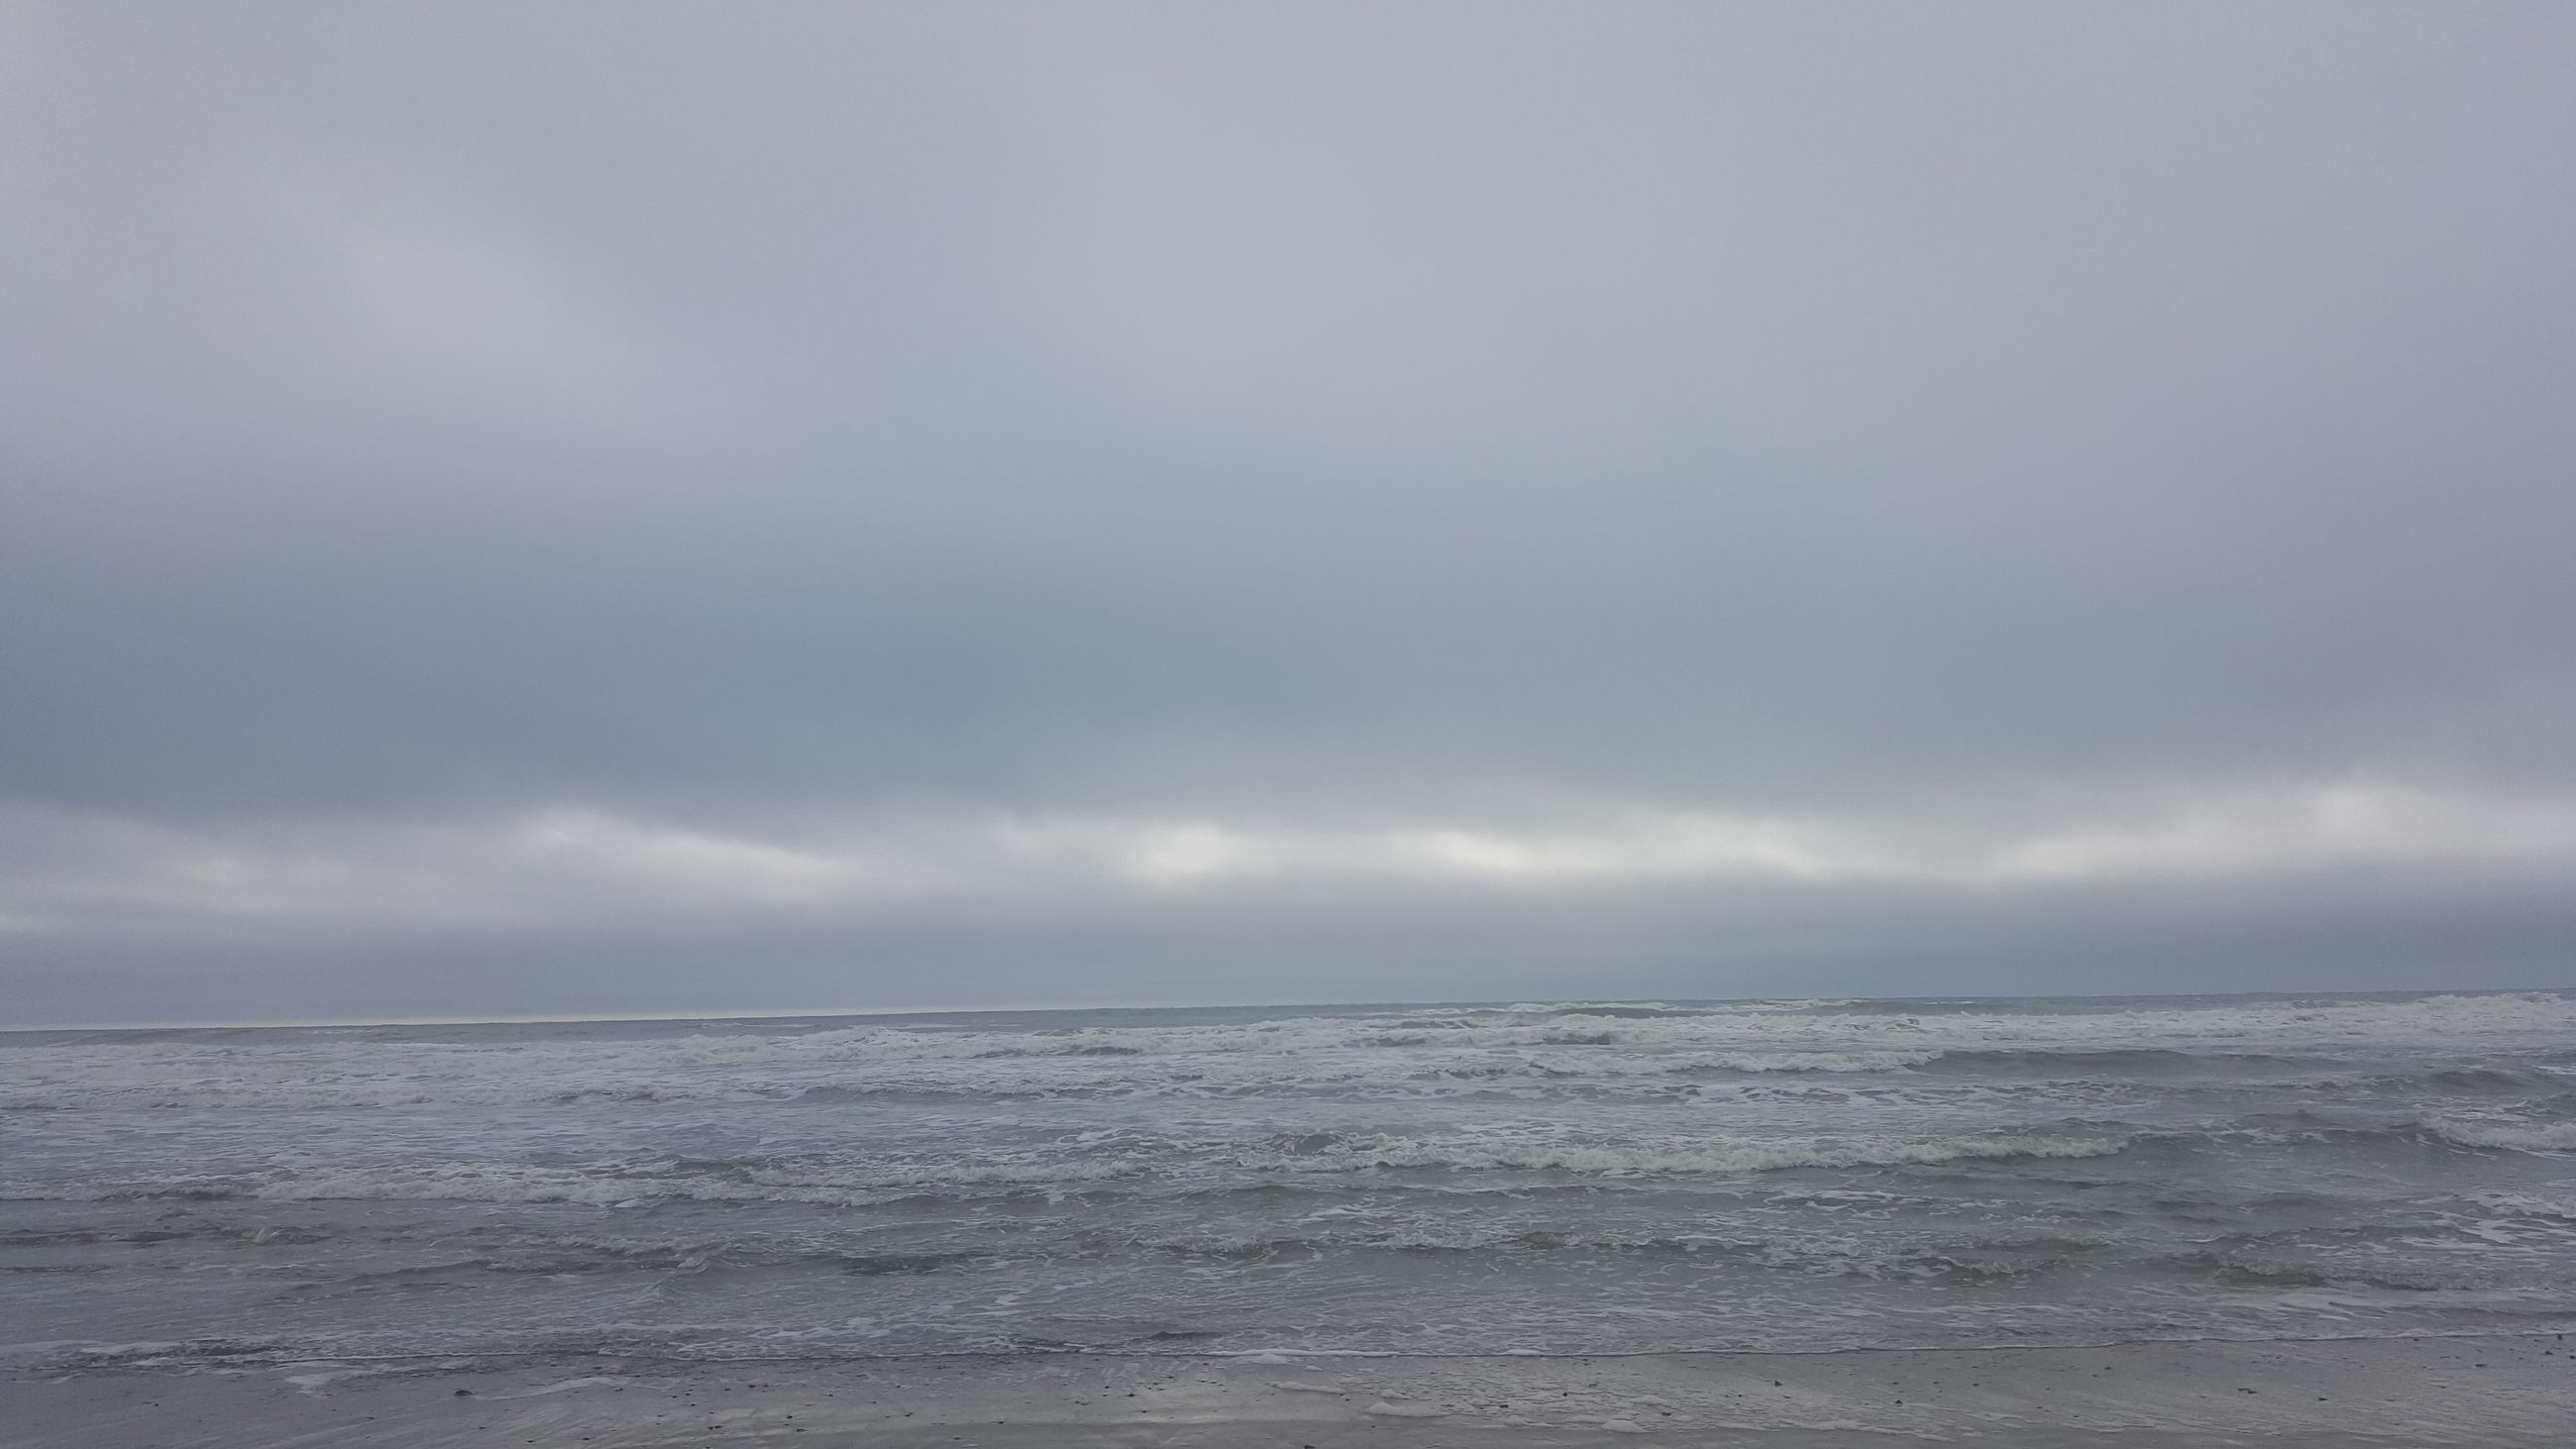 sea, sky, horizon over water, tranquil scene, water, scenics, tranquility, beauty in nature, cloud - sky, cloudy, nature, beach, weather, waterfront, overcast, idyllic, shore, cloud, remote, outdoors